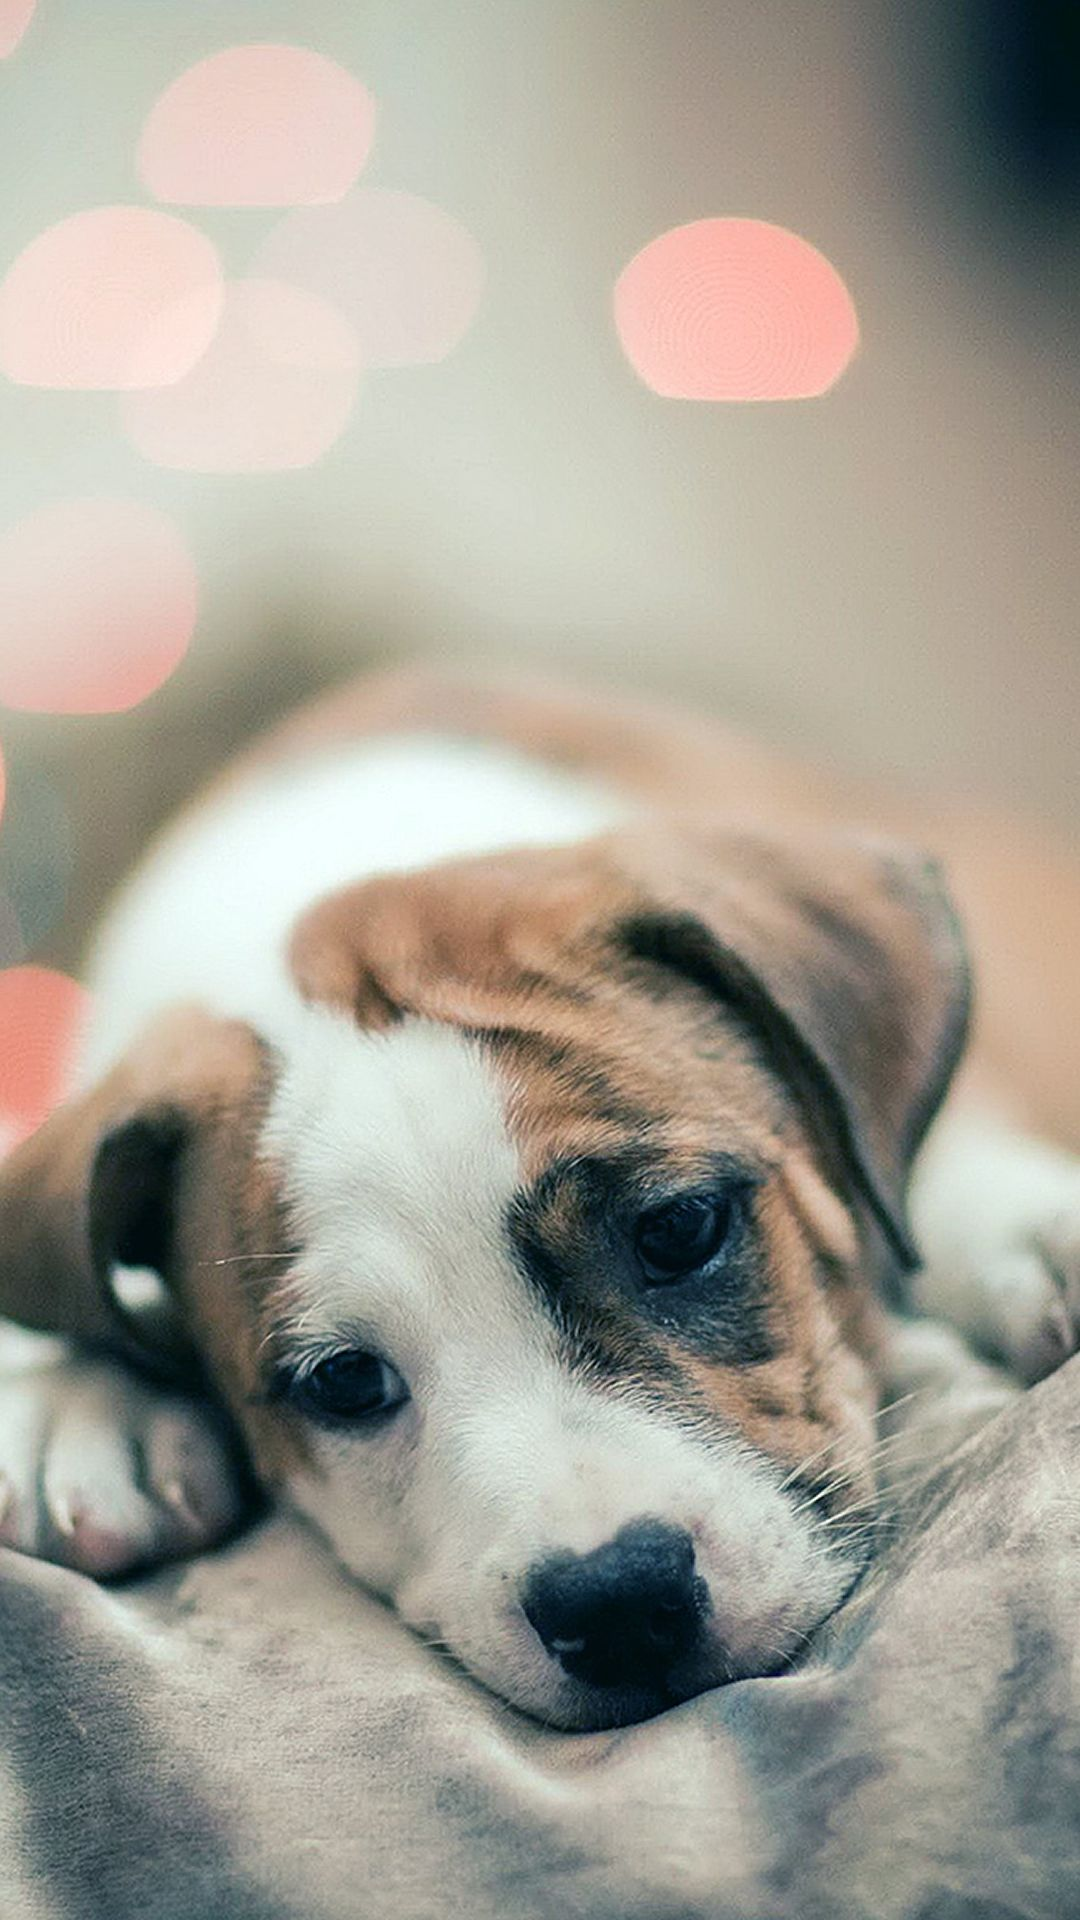 60 Cute Animals Iphone Wallpapers You Would Love To Download Dog